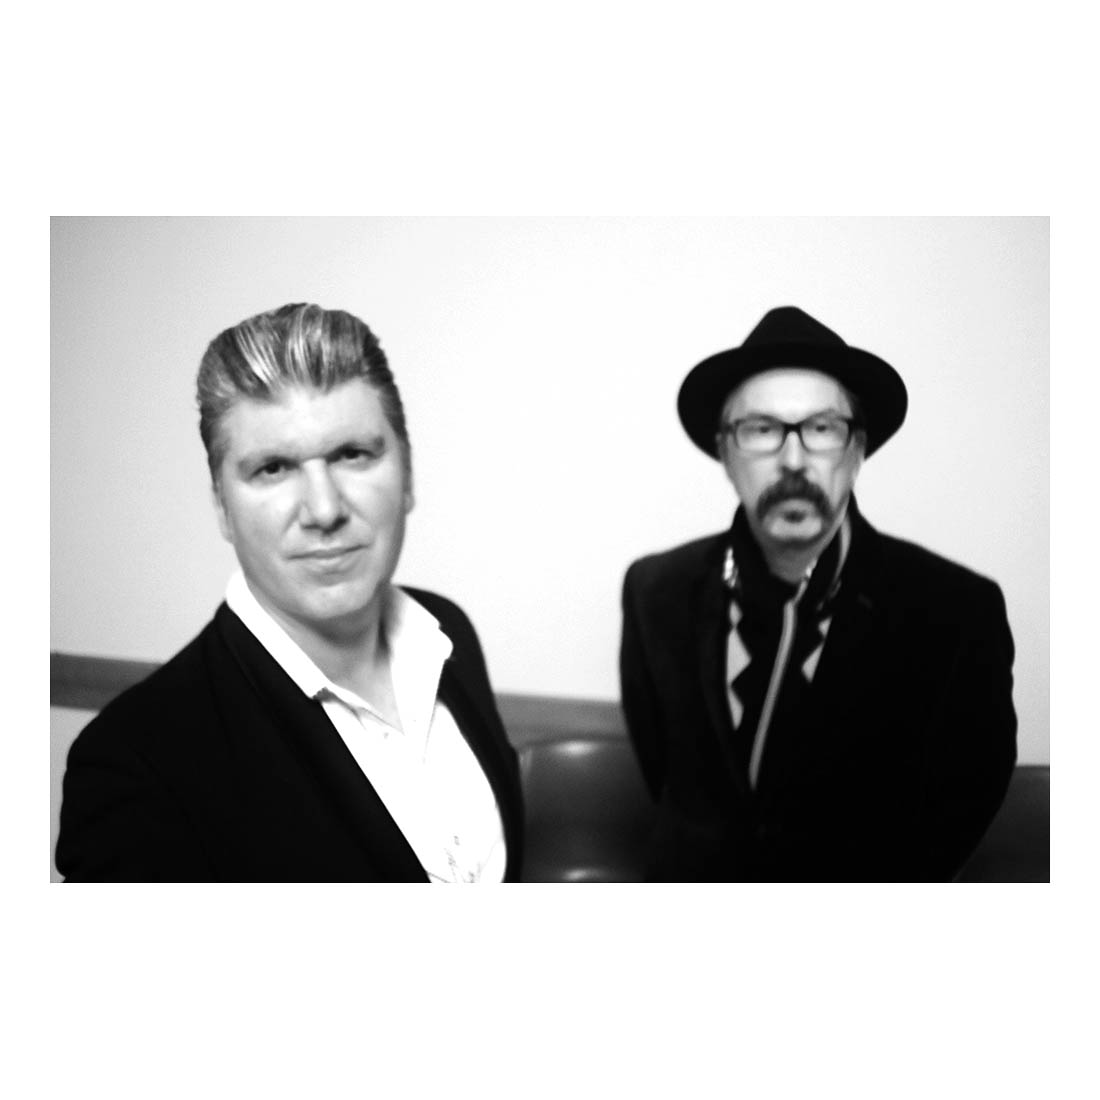 Mikelangelo    and Rob     Snarski    , Turner, ACT, 2016    I did an impromptu photo shoot with Mikel and Rob before a gig they did at the Polish White Eagle Club. I took a lot of photos that night but my favourite was this one, the first shot I took. Unfortunately, being the first shot of the night I hadn't worked out the exposure correctly yet, it was badly overexposed. I tried to correct that but couldn't until I thought of separating the colour channels and found one that had more information in it than the other channels (I think it was the green channel). I was glad I was able salvage this.